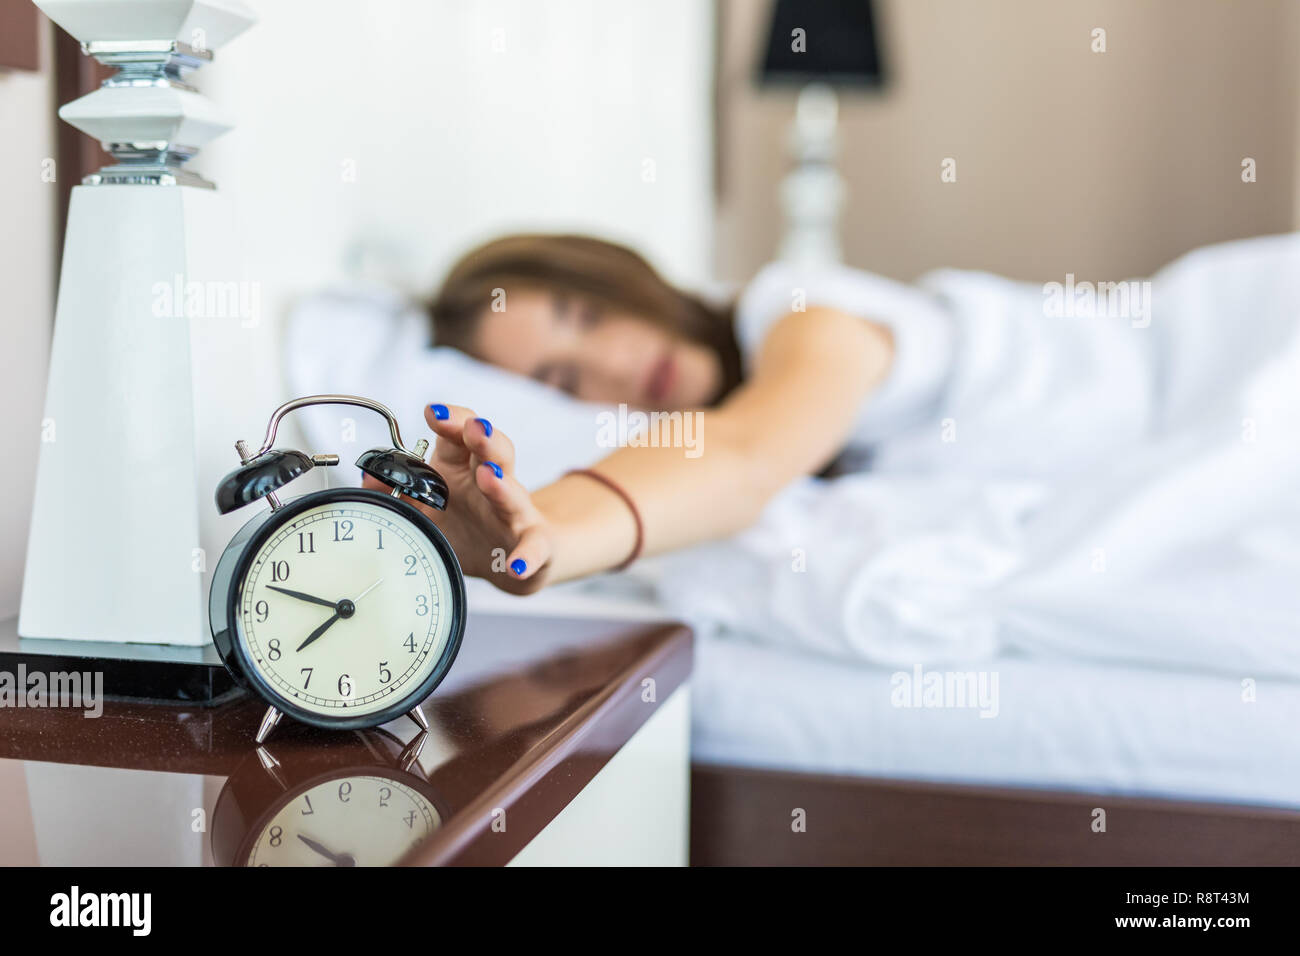 Young Woman Turn Off Alarm Clock In Good Morning Wake Up For Sleep With Closeup Foreground Alarm Clock Relax And Lifestyle Concept